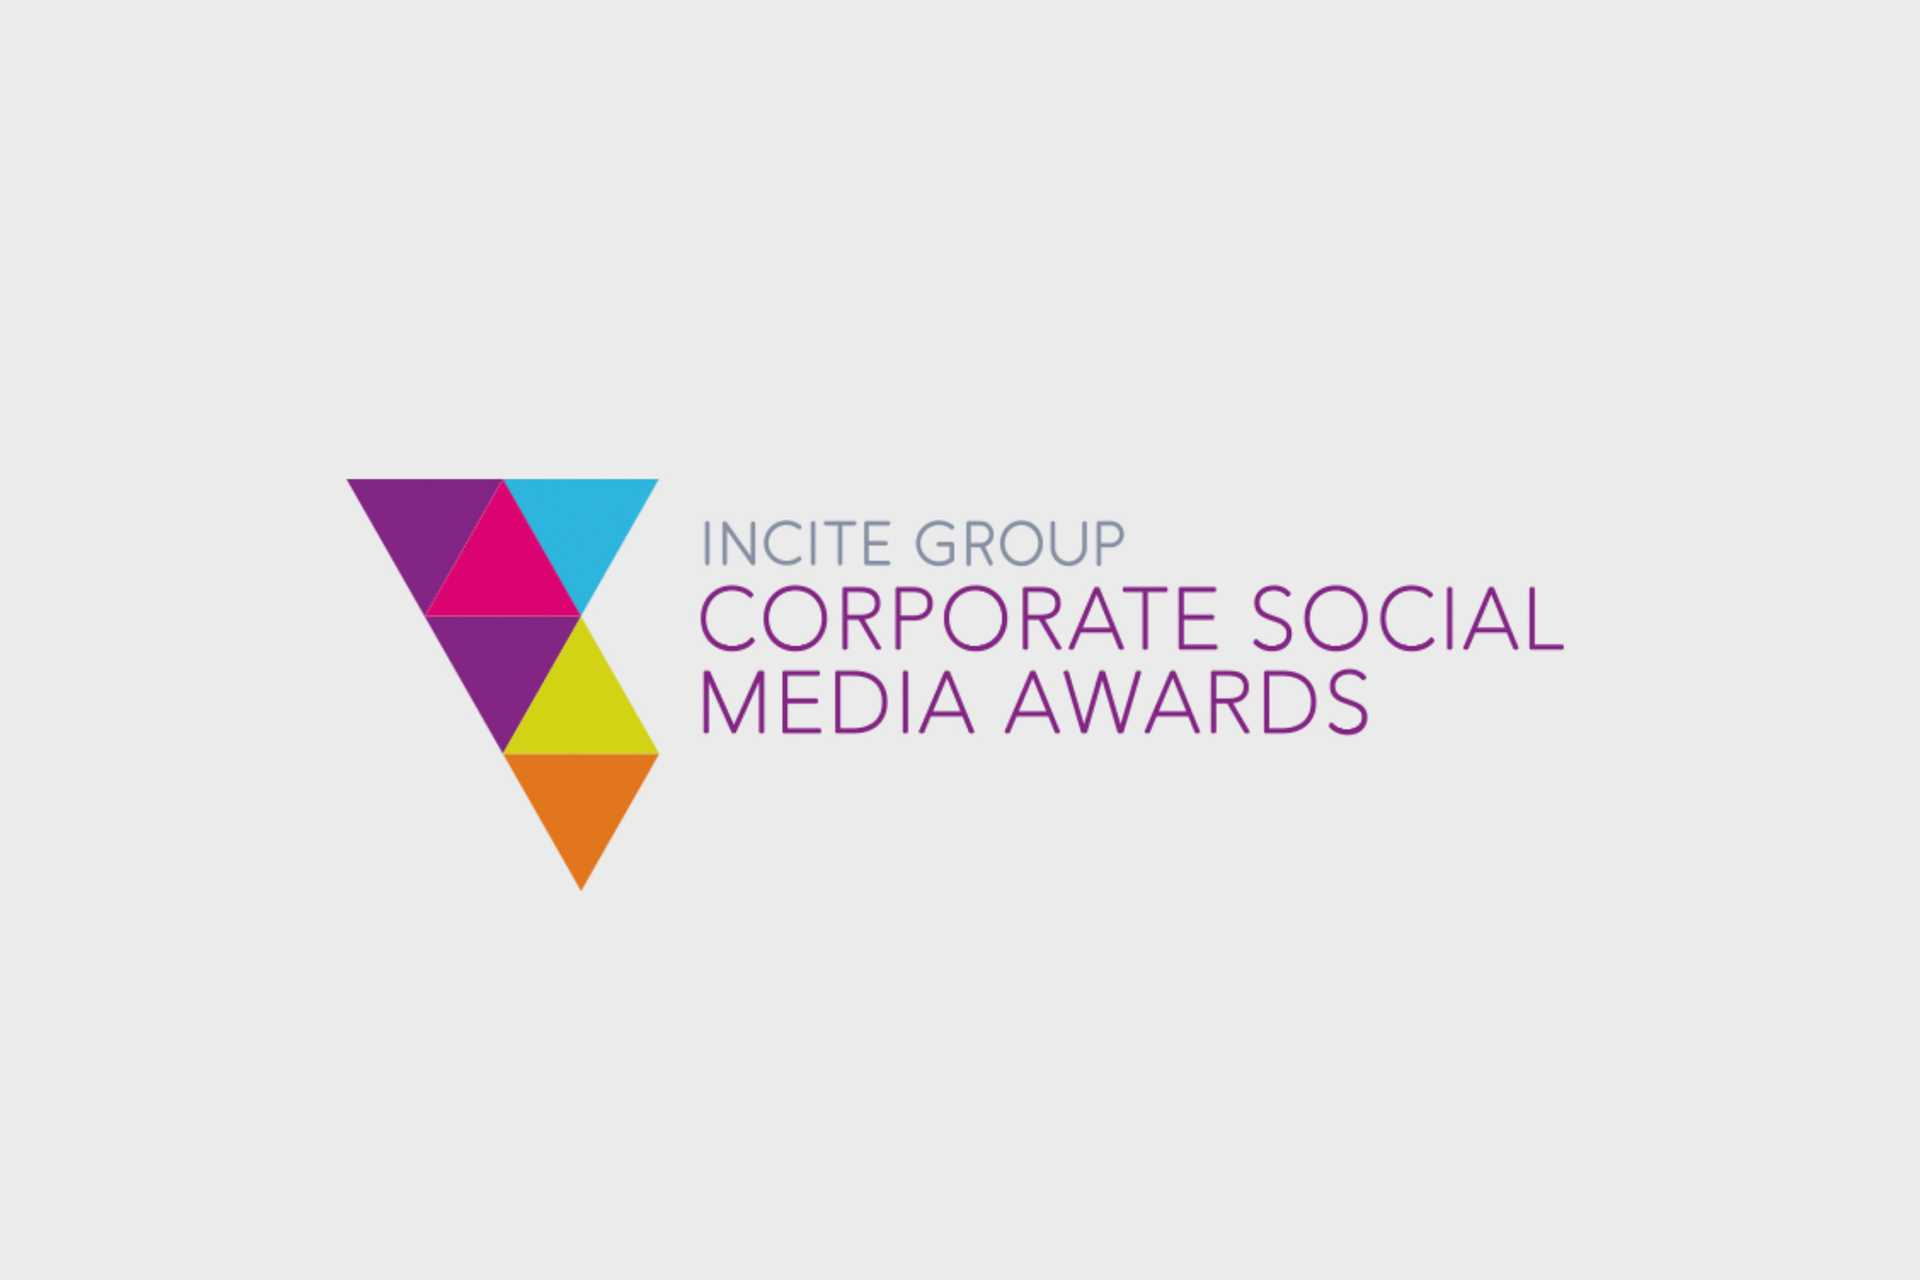 Incite Group Corporate Social Media Awards